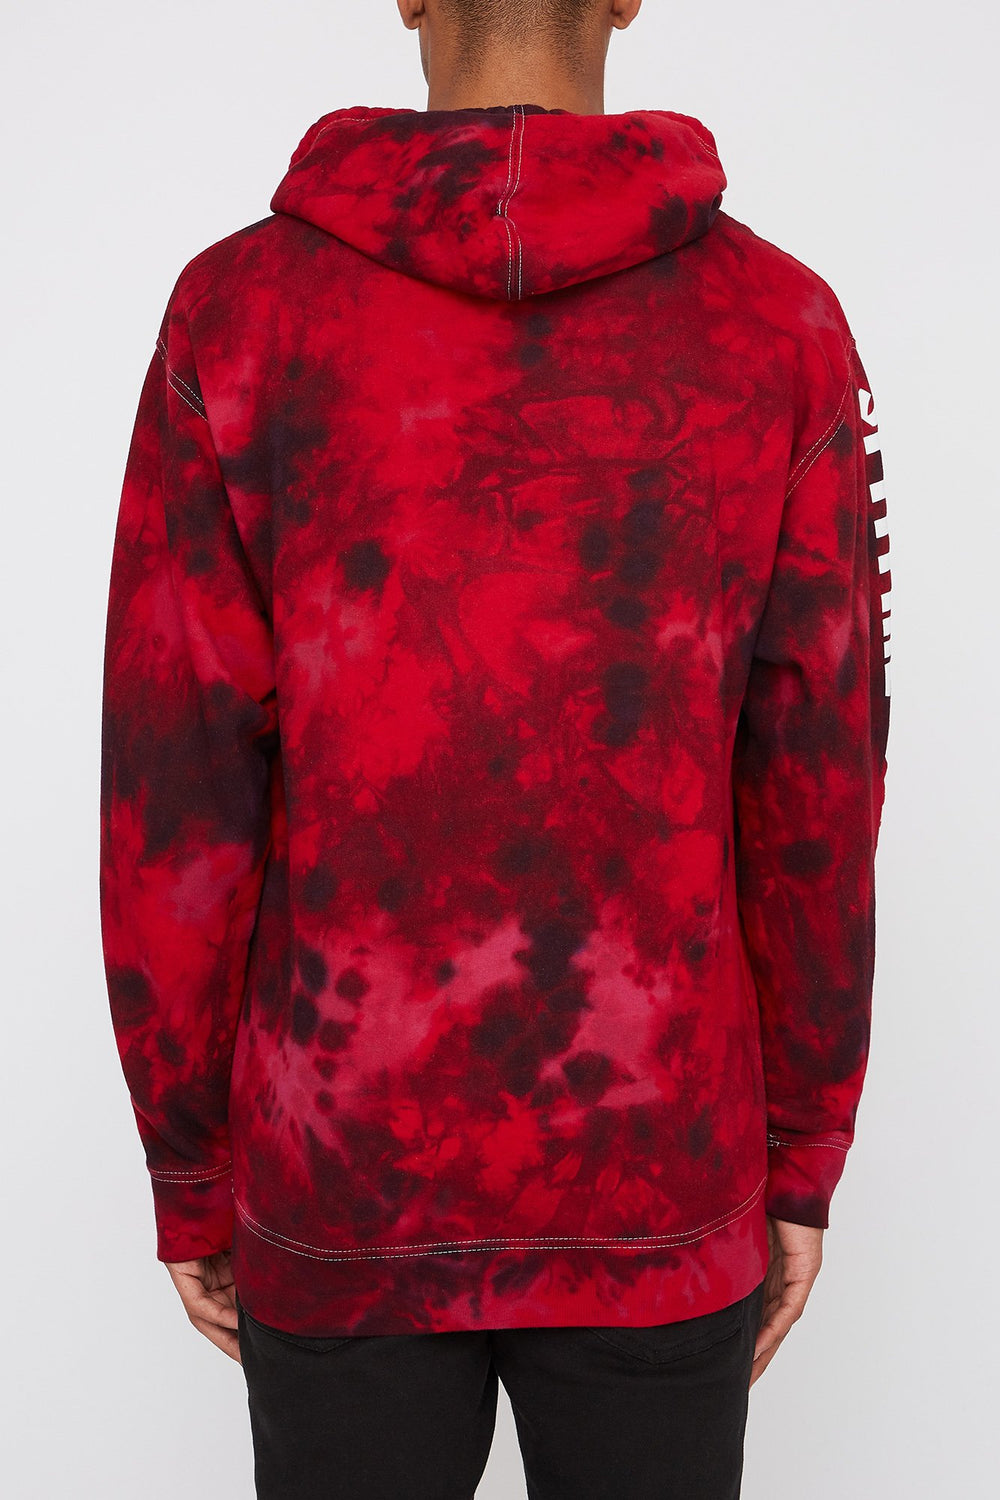 Spitfire Mens Red Tie-Dye Hoodie Red